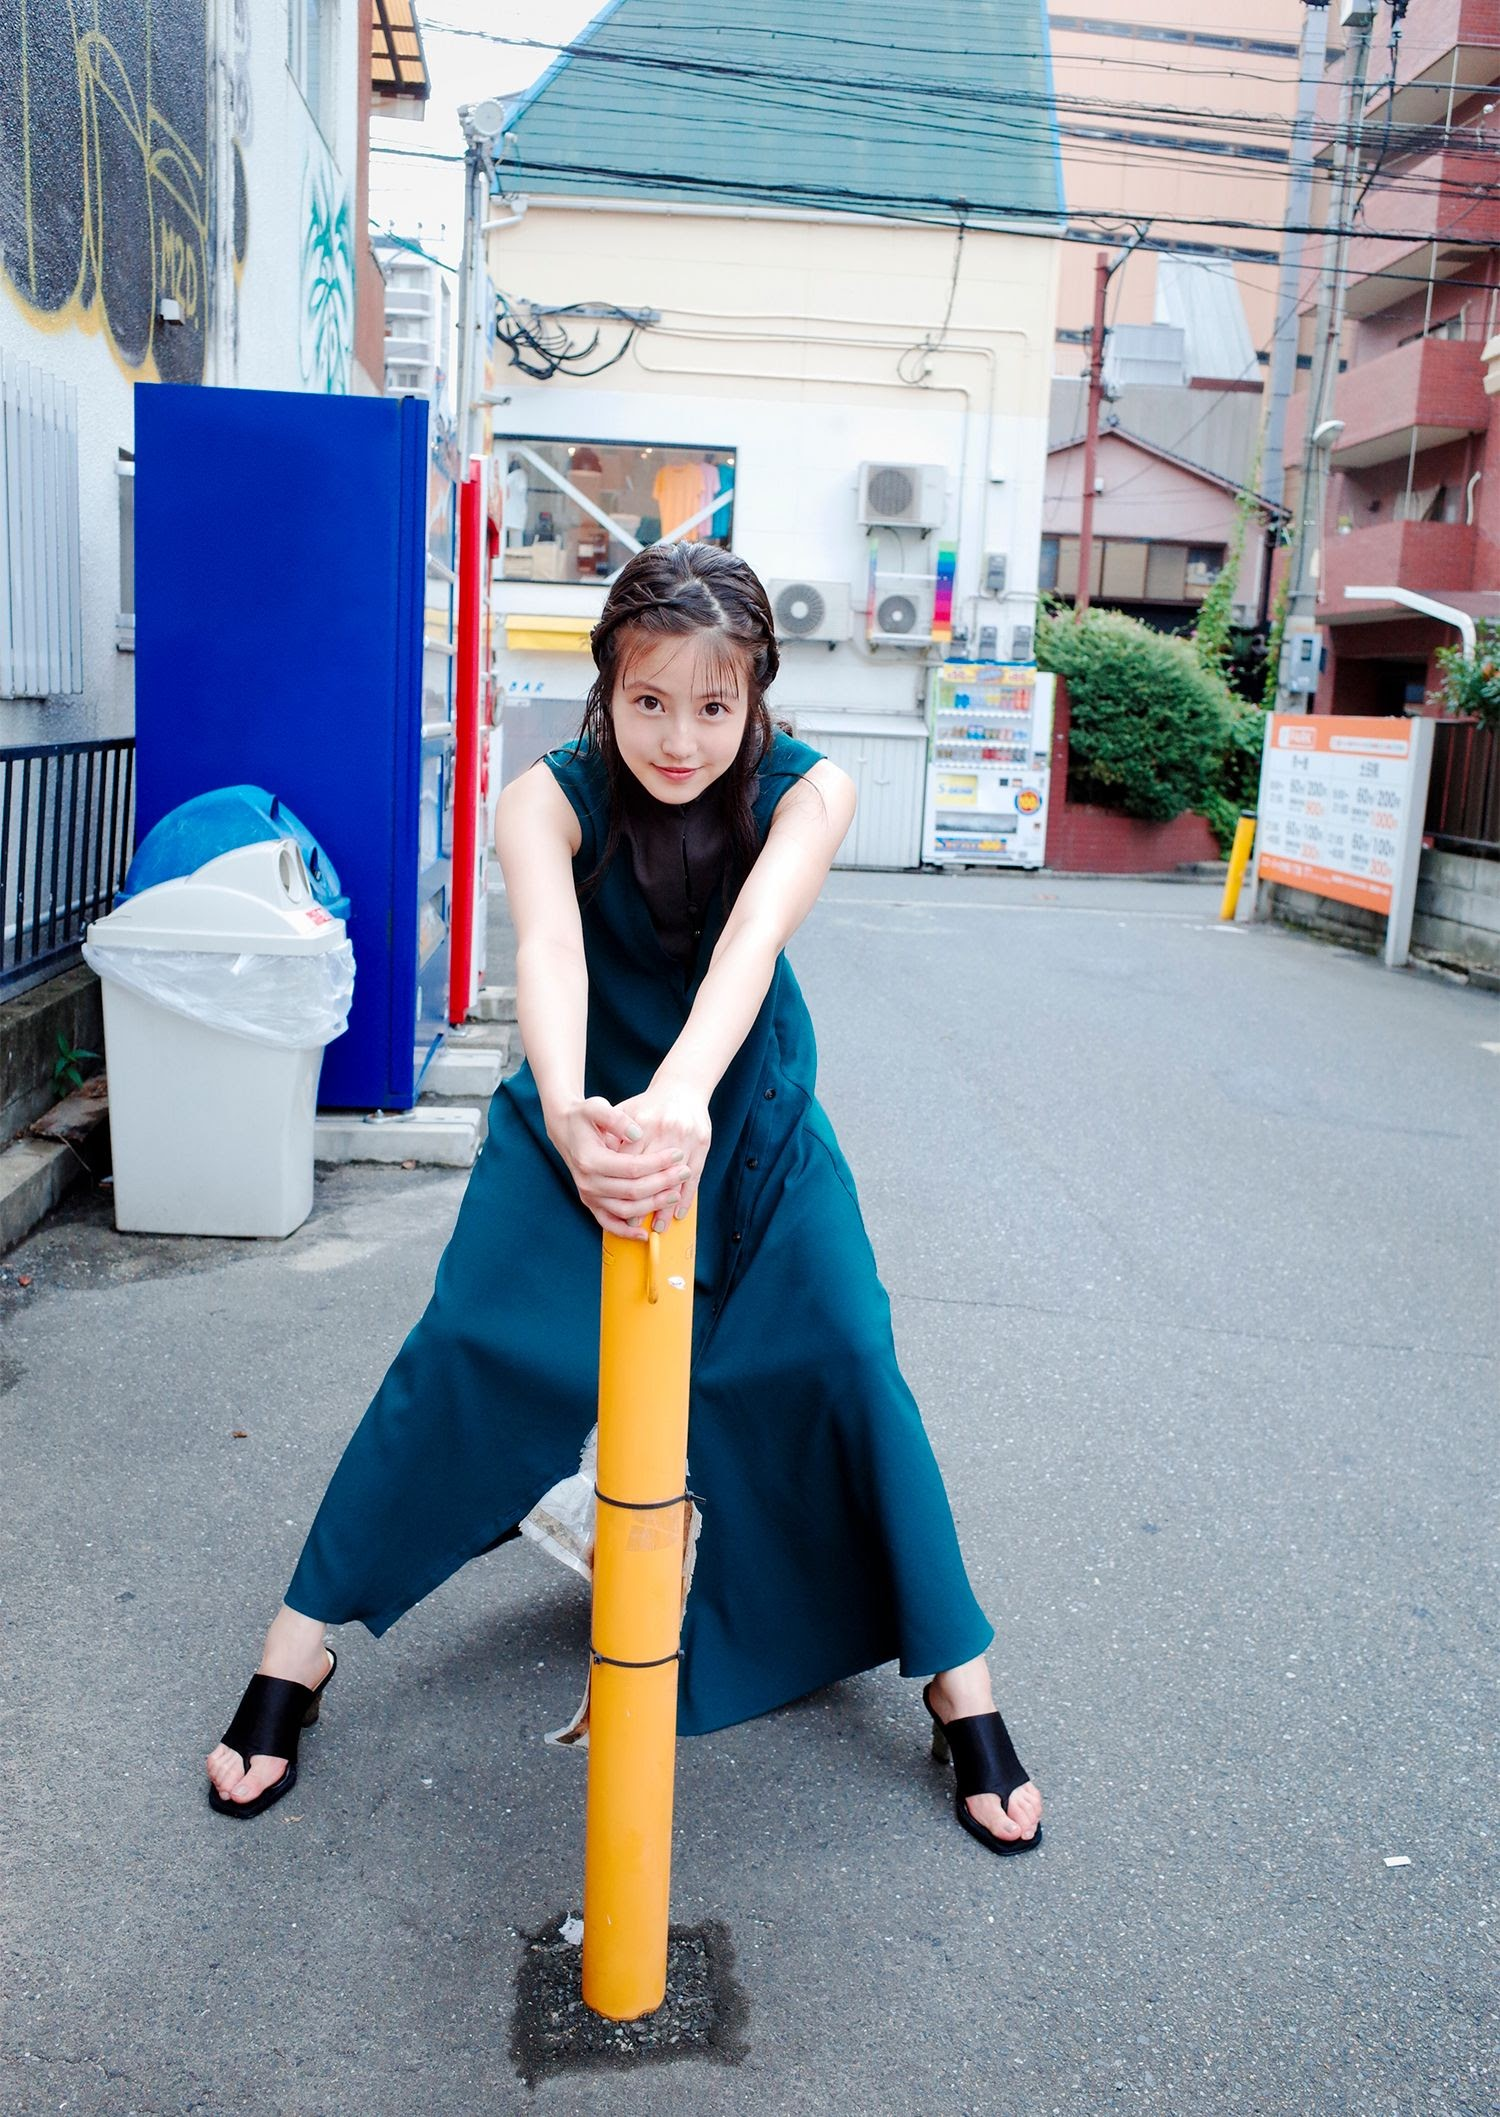 Without a doubt the youngest actress Mio Imada029